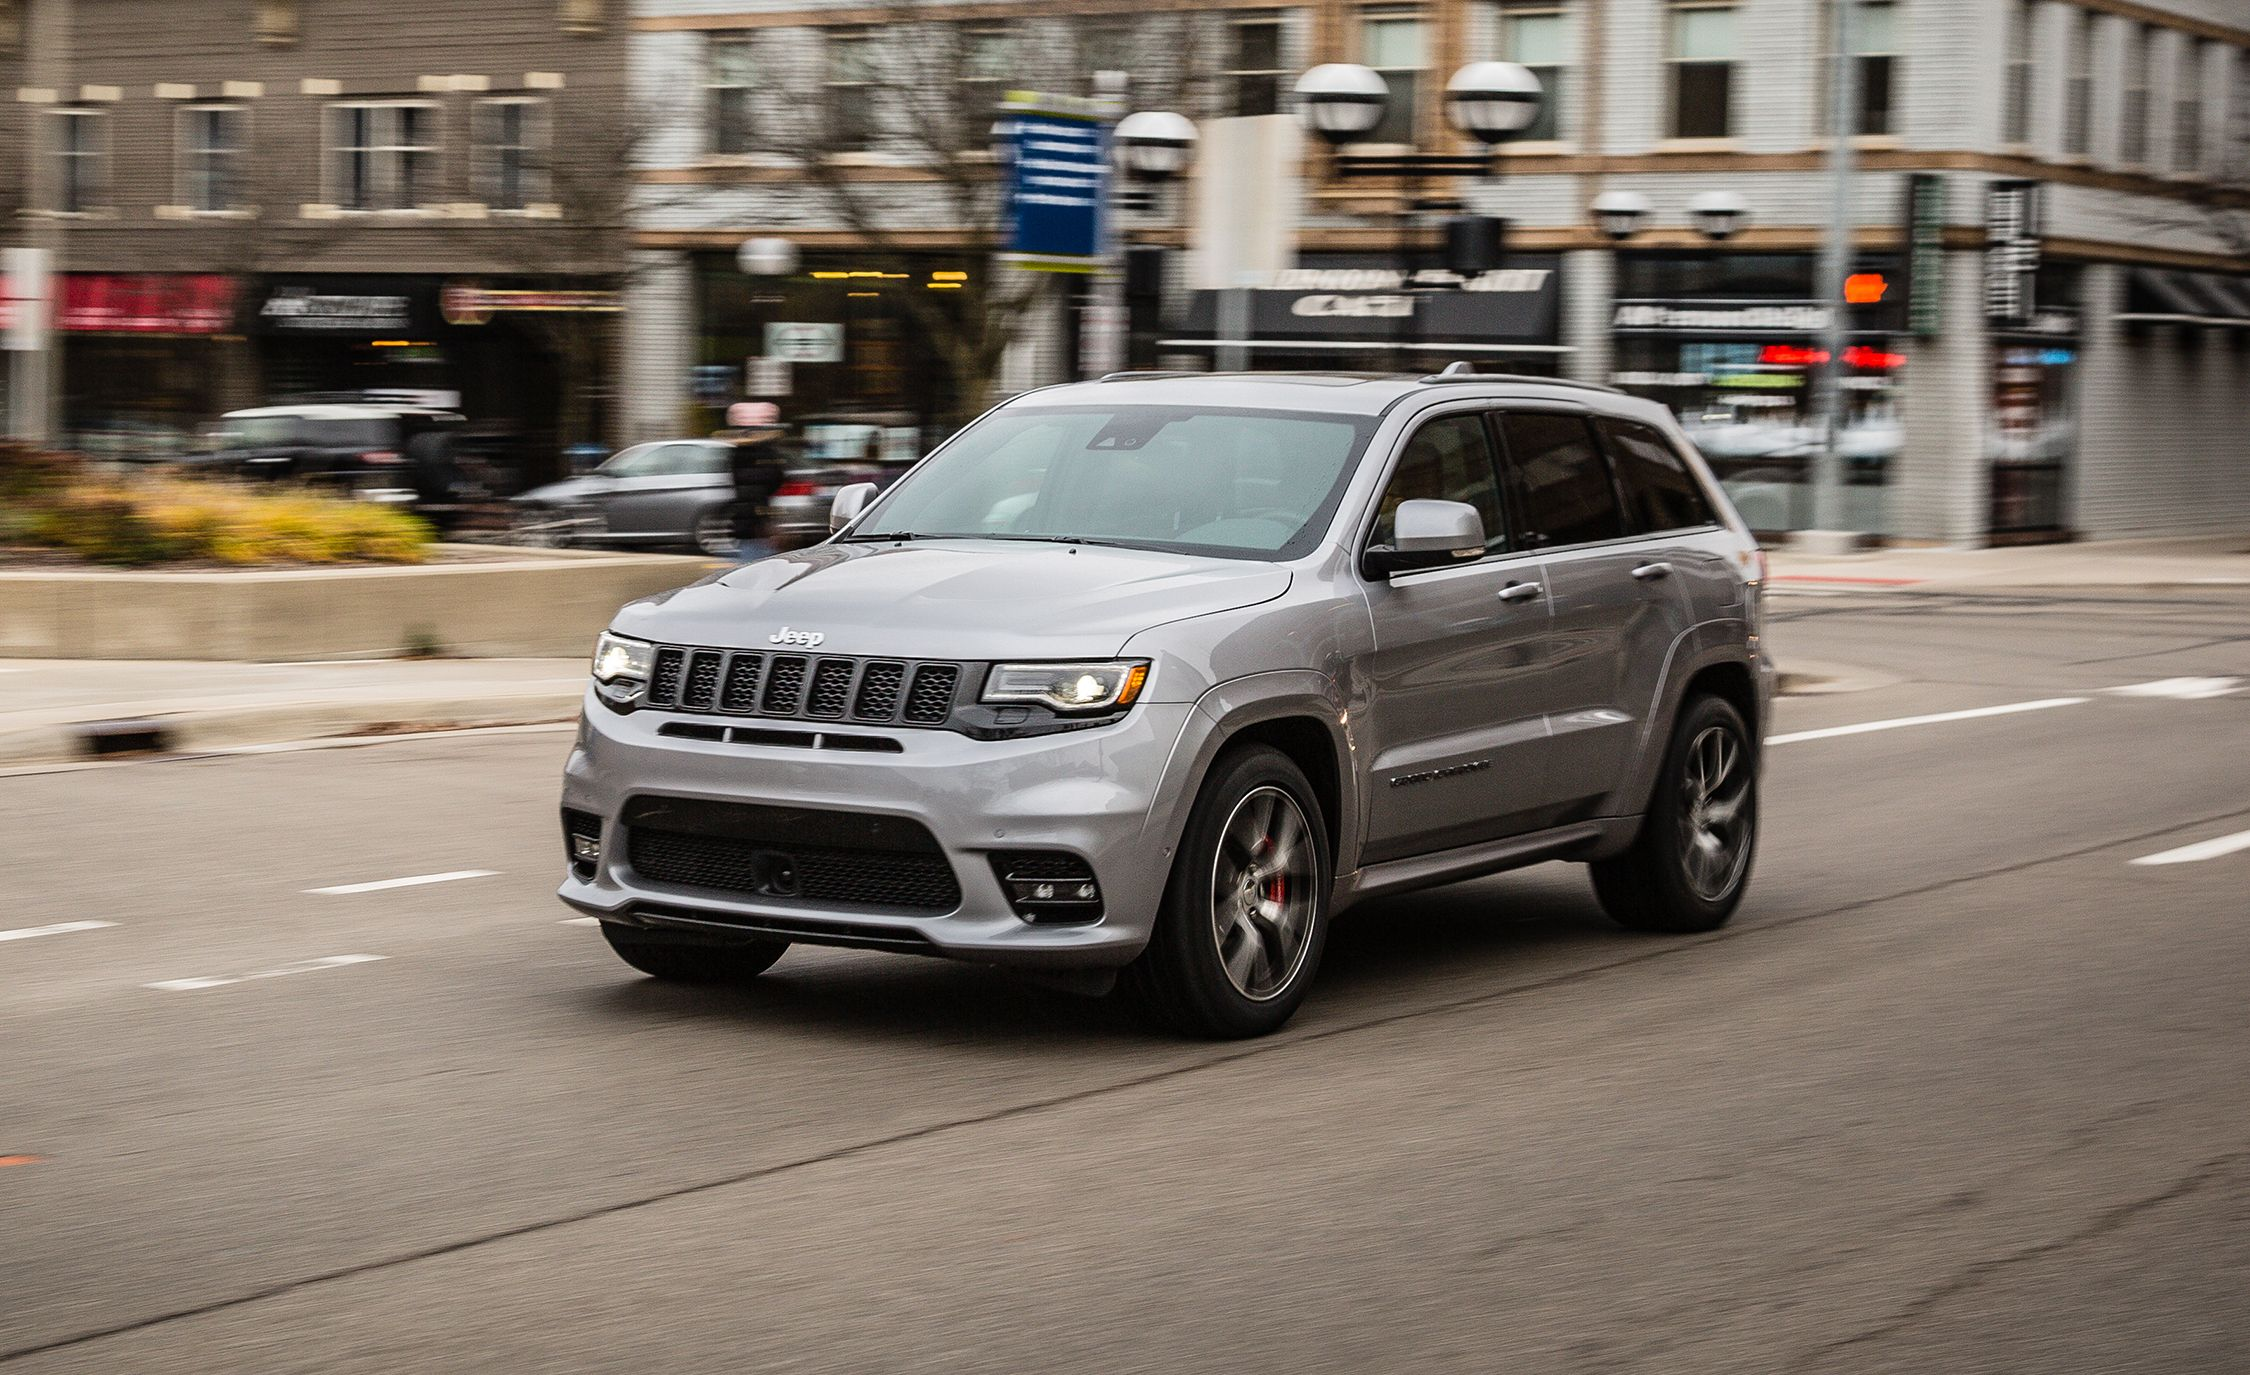 Jeep cherokee srt review